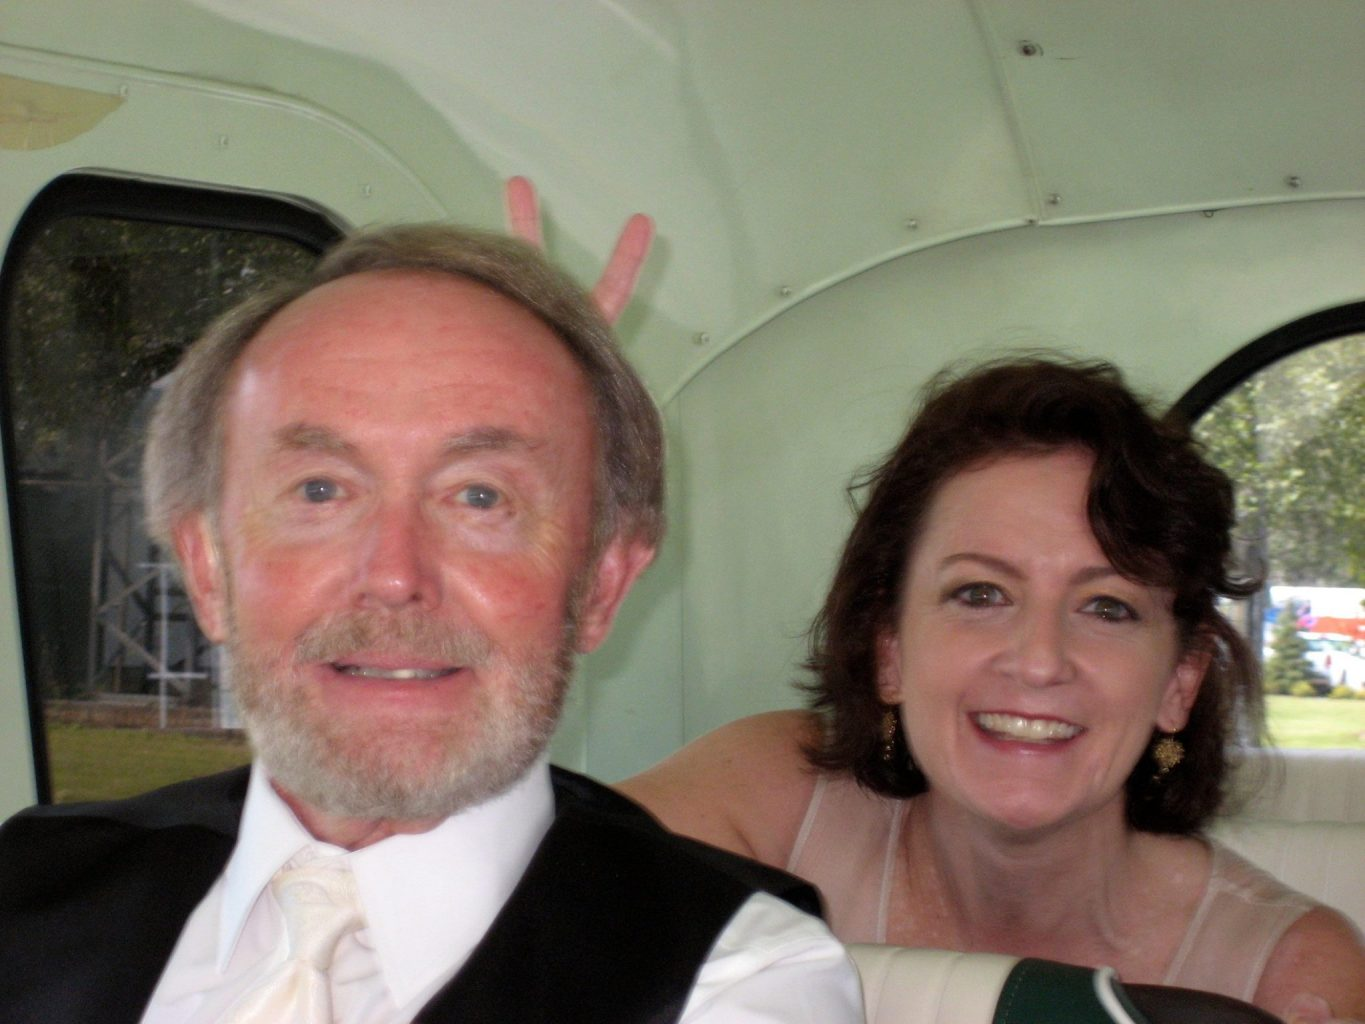 """Photograph of Laurie Morris and her father sitting in formal wear in the back of a vehicle. Laurie is doing """"bunny ears"""" behind her dad's head."""